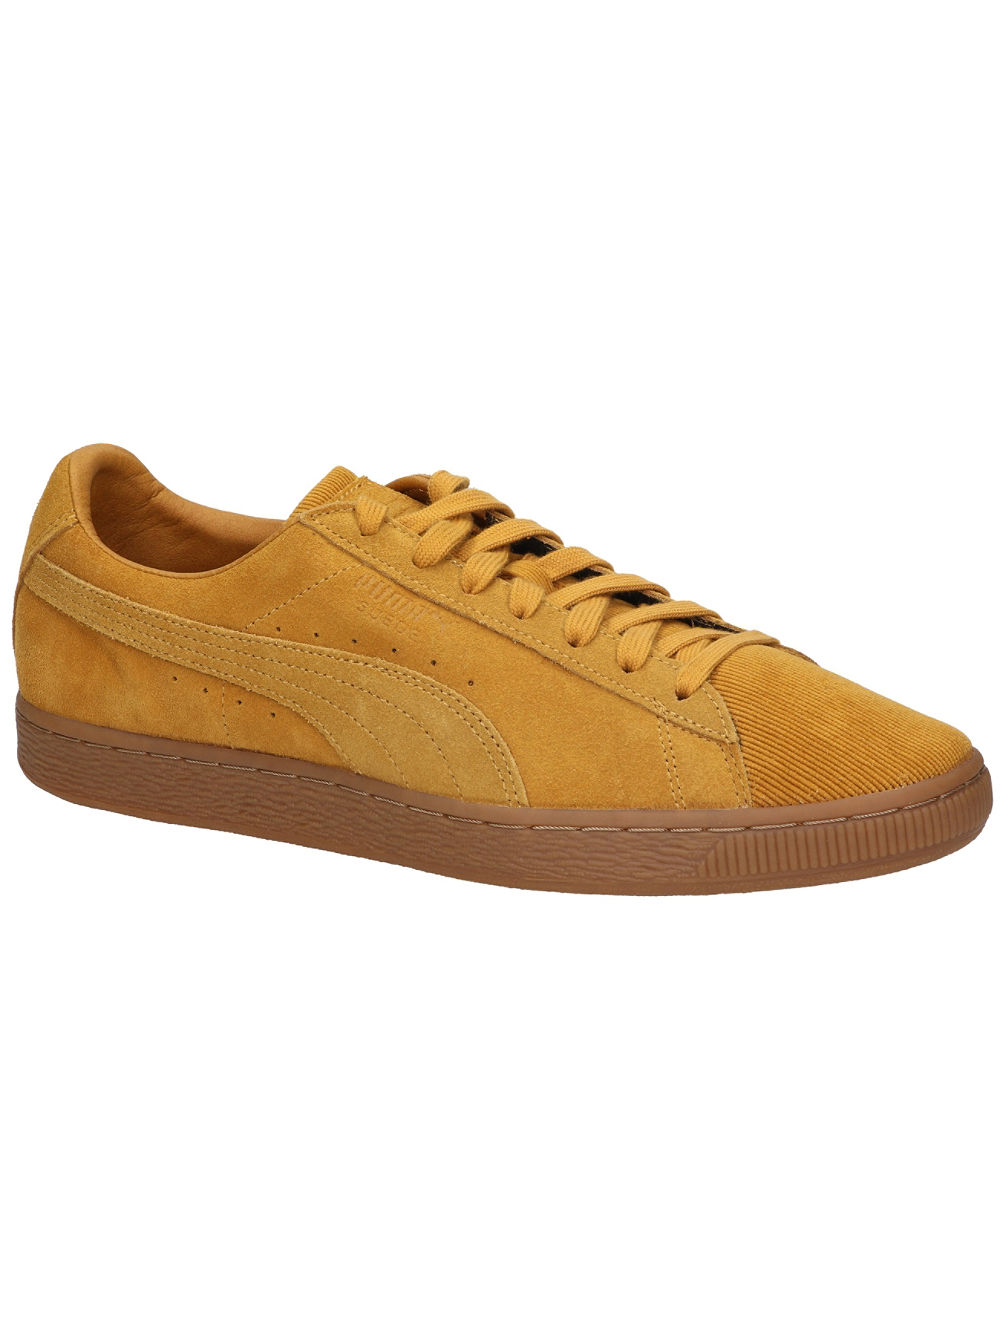 best service 182dd 30919 Suede Classic Pincord Sneakers